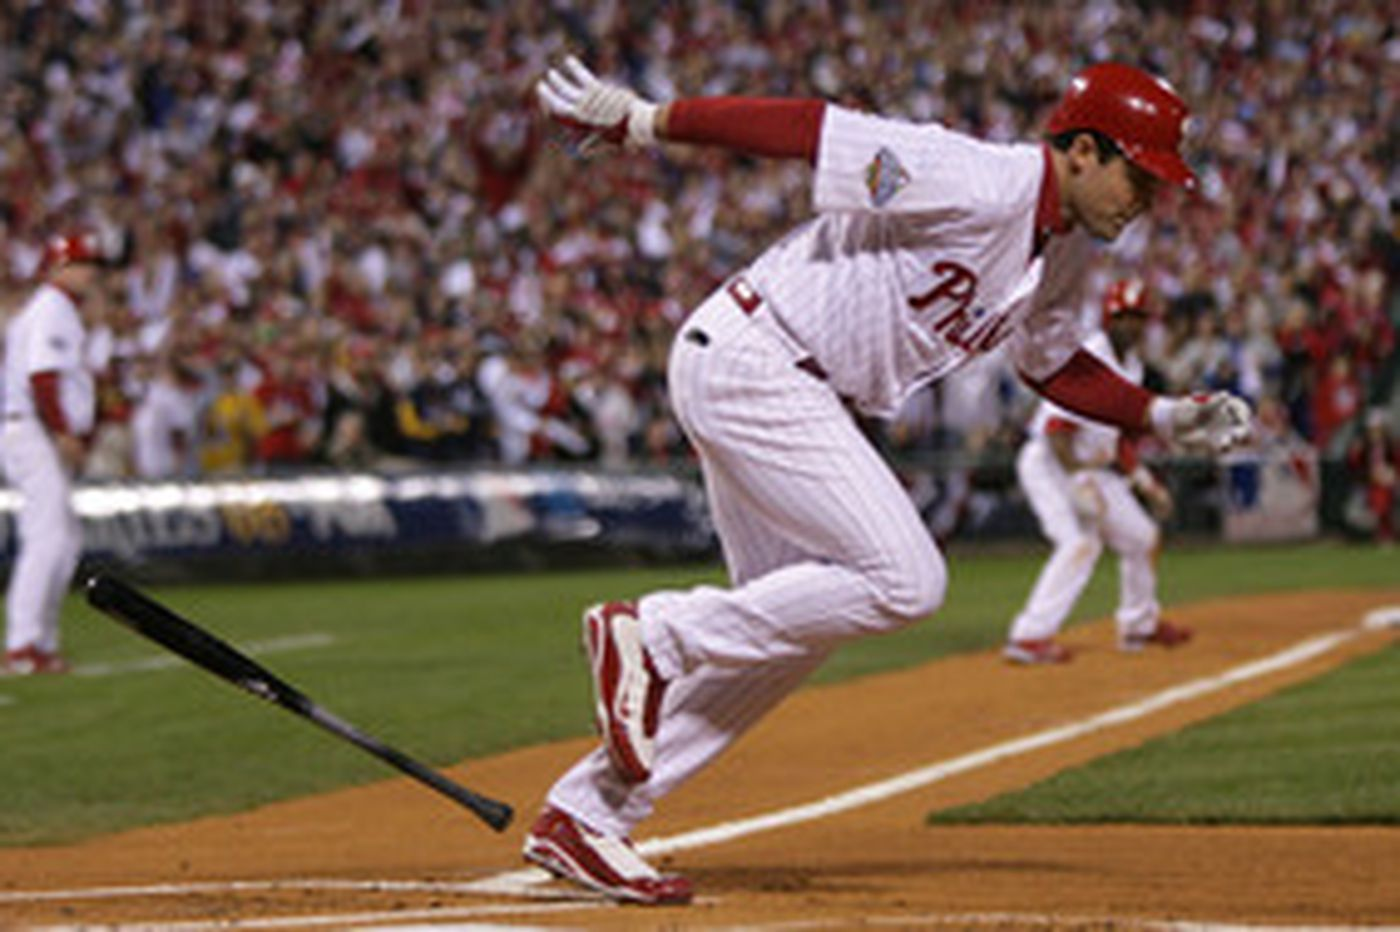 It's never too early to start looking at 2009 Phillies season